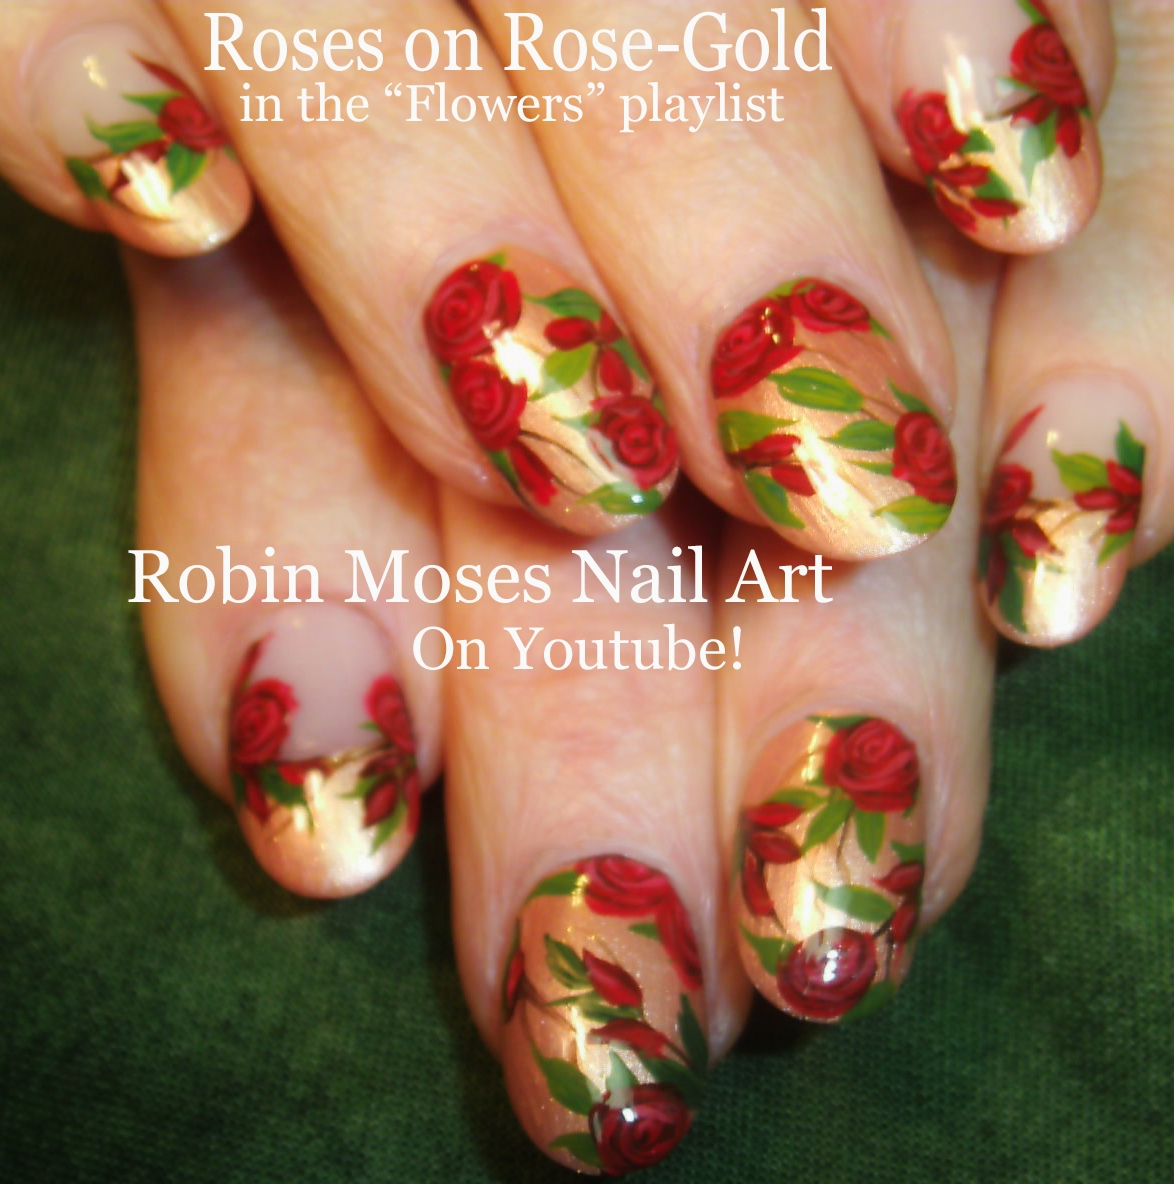 Red roses on black tips roses do it yourself how to paint flower nails playlist of easy flower nail art tutorials floral nail designs ideas for beginners to advanced nail techs solutioingenieria Choice Image